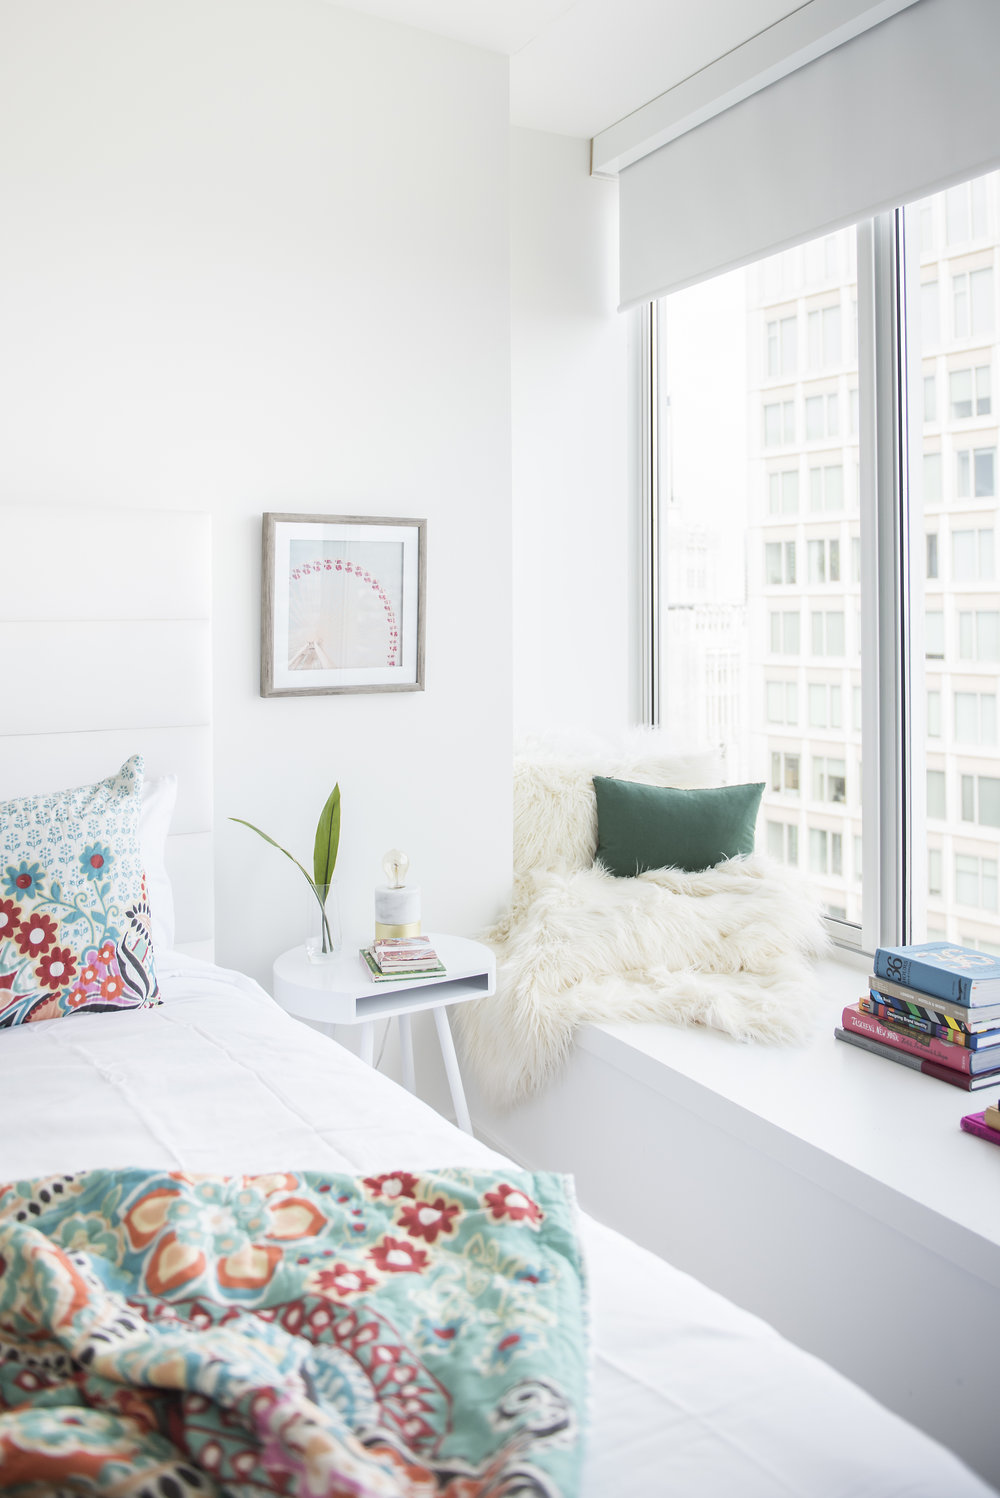 JuliaSperling_Houzz_San Francisco_Apartment_03.jpg